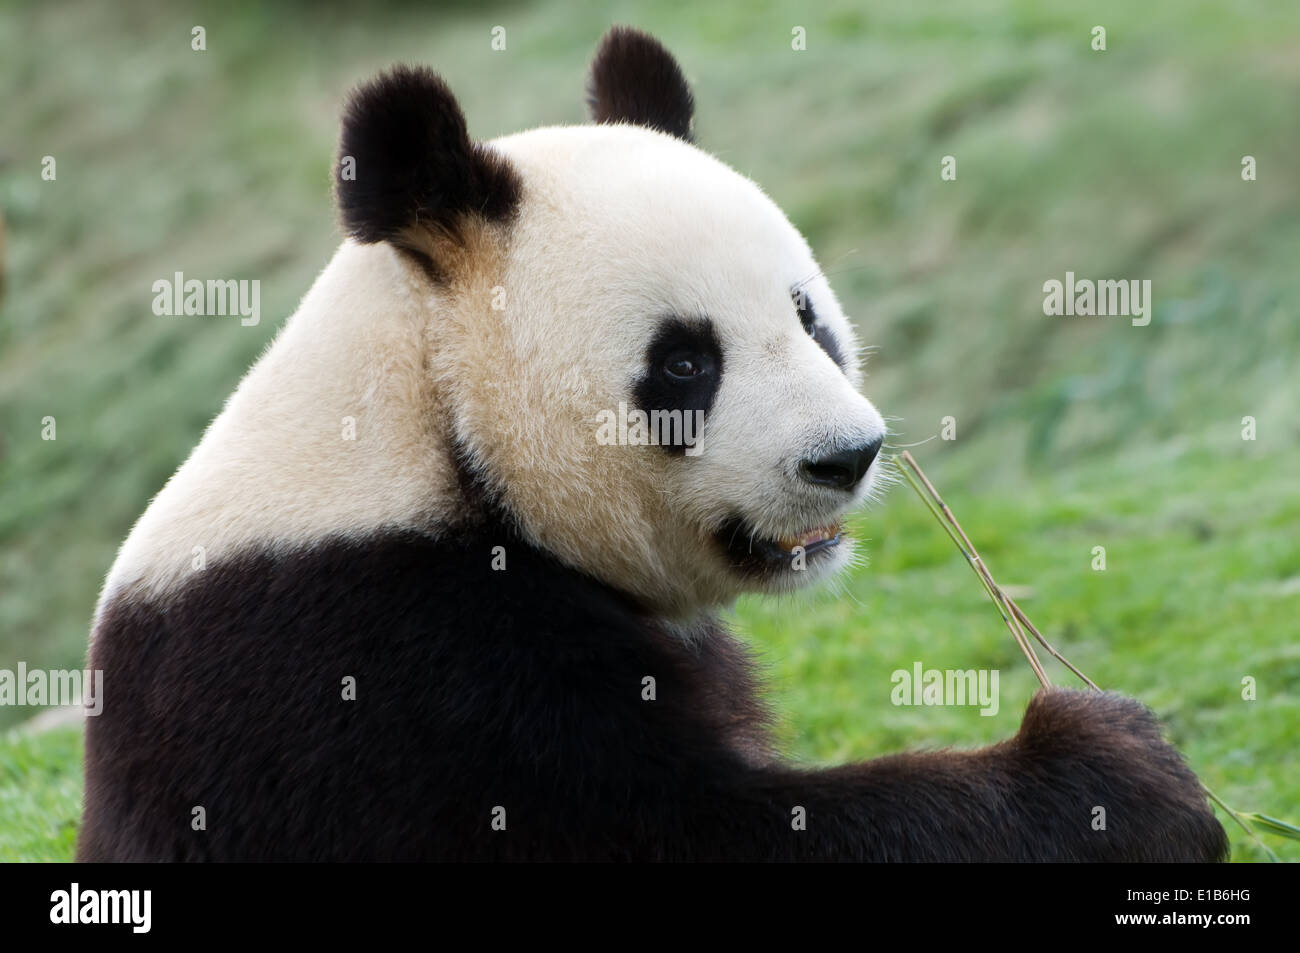 Adultes rares grand panda eating bamboo Photo Stock